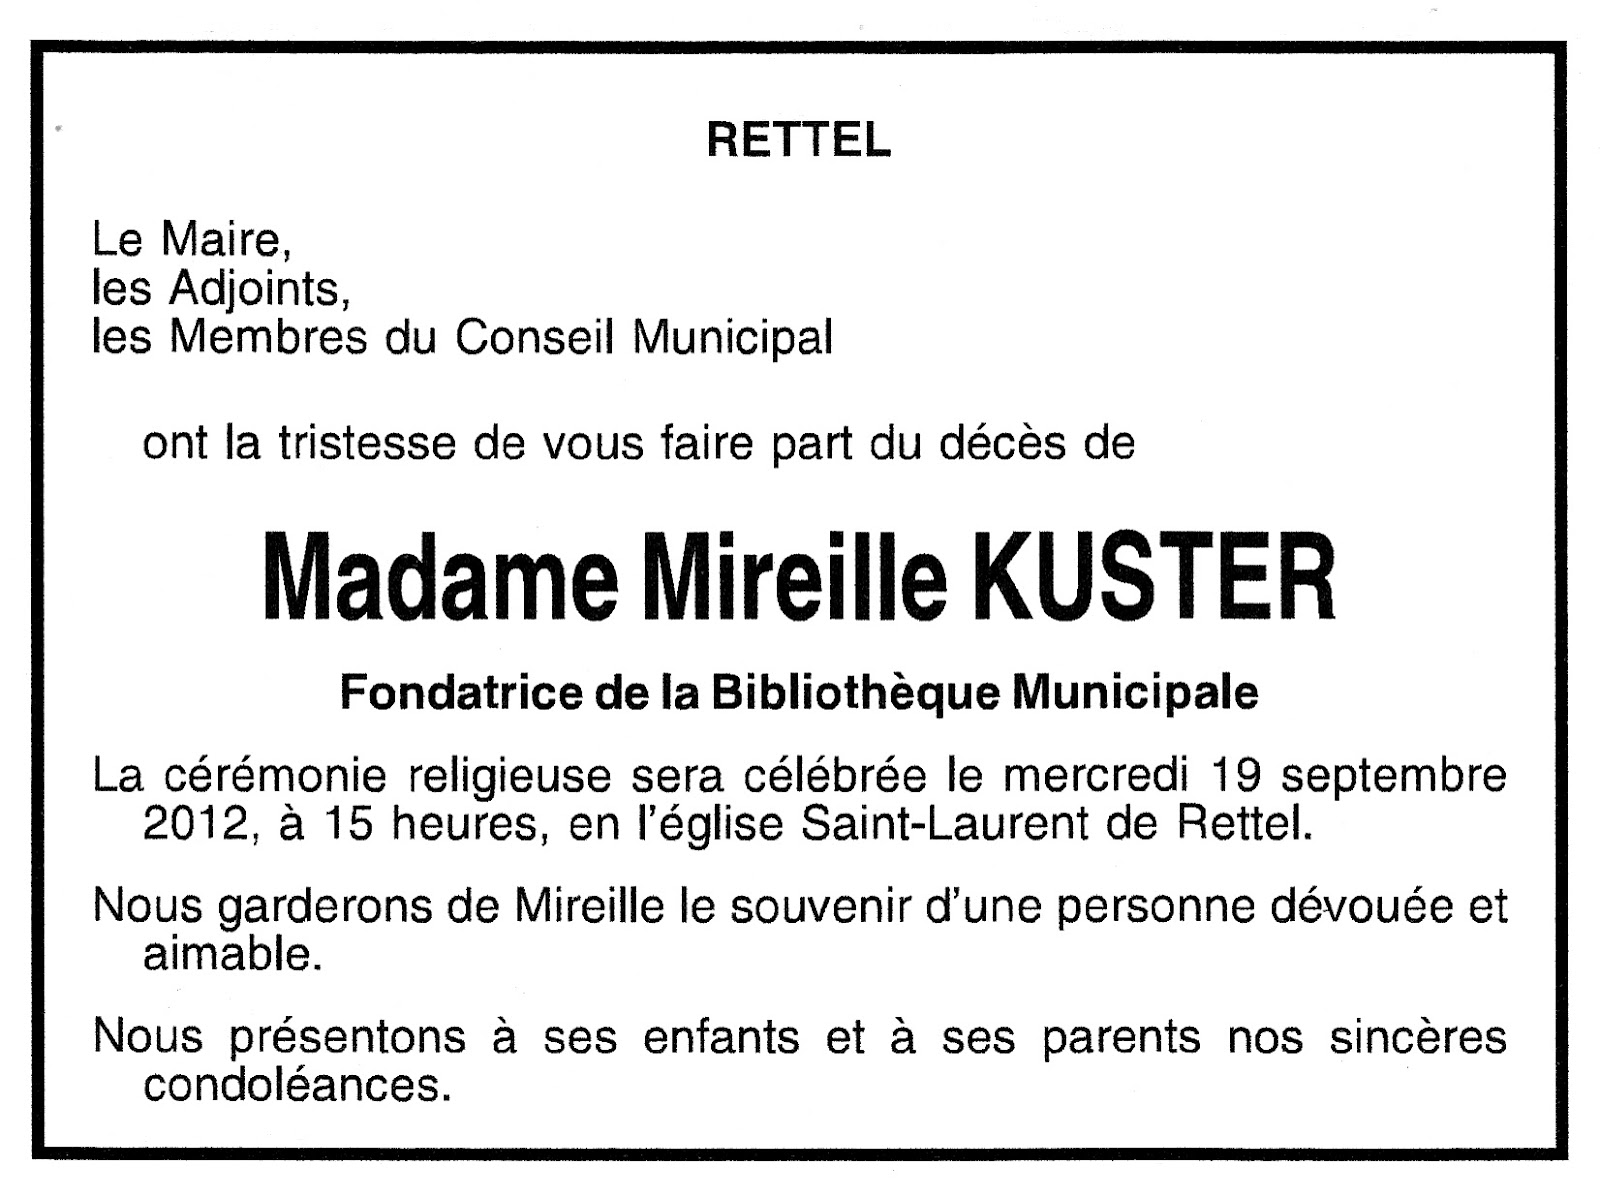 chanel toujours anciens l ves de spc avis de d c s de mireille kuster. Black Bedroom Furniture Sets. Home Design Ideas